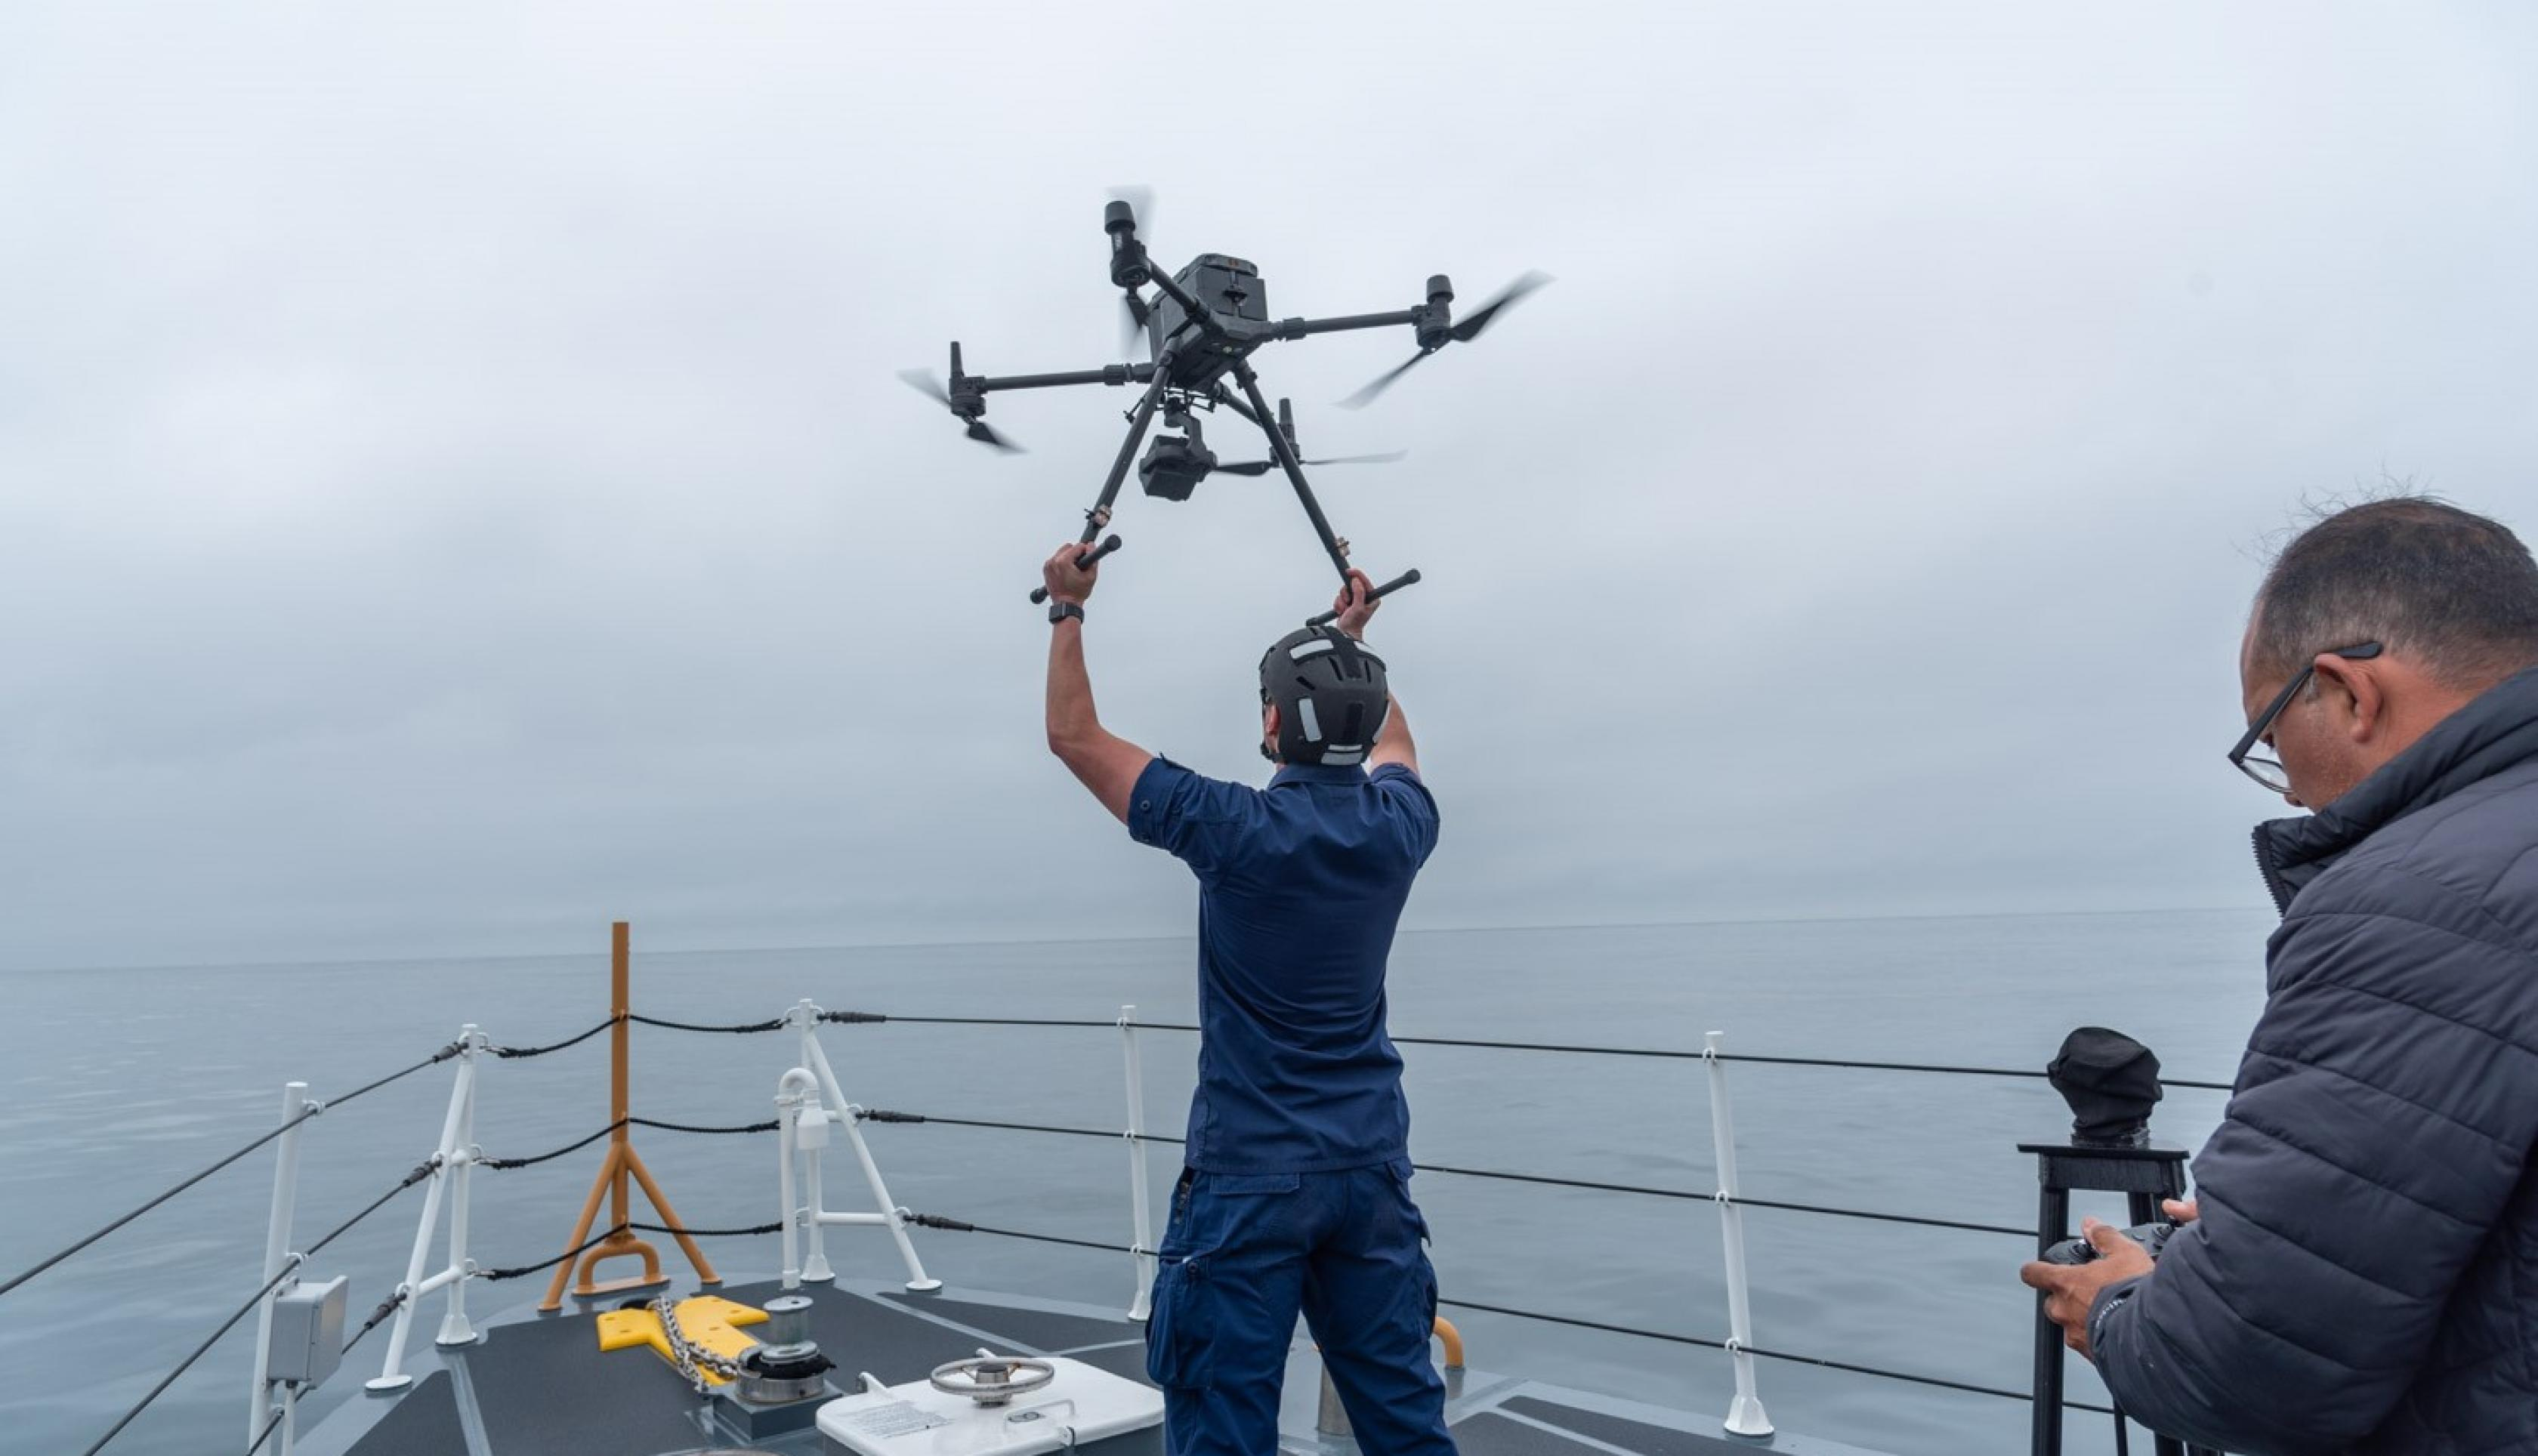 A crewmember of the Coast Guard cutter Blackfin releases a drone as part of Marine Oil Spill Thickness field campaign off the coast of Santa Barbara, CA. The drone carries a multi-spectral sensor to classify oil thickness. These data are compared with SAR imagery from NASA's aircraft UAVSAR. Oscar Garcia (right) of the Watermapping LLC controls the drone. Credits: NASA/University of Maryland/Frank Monaldo